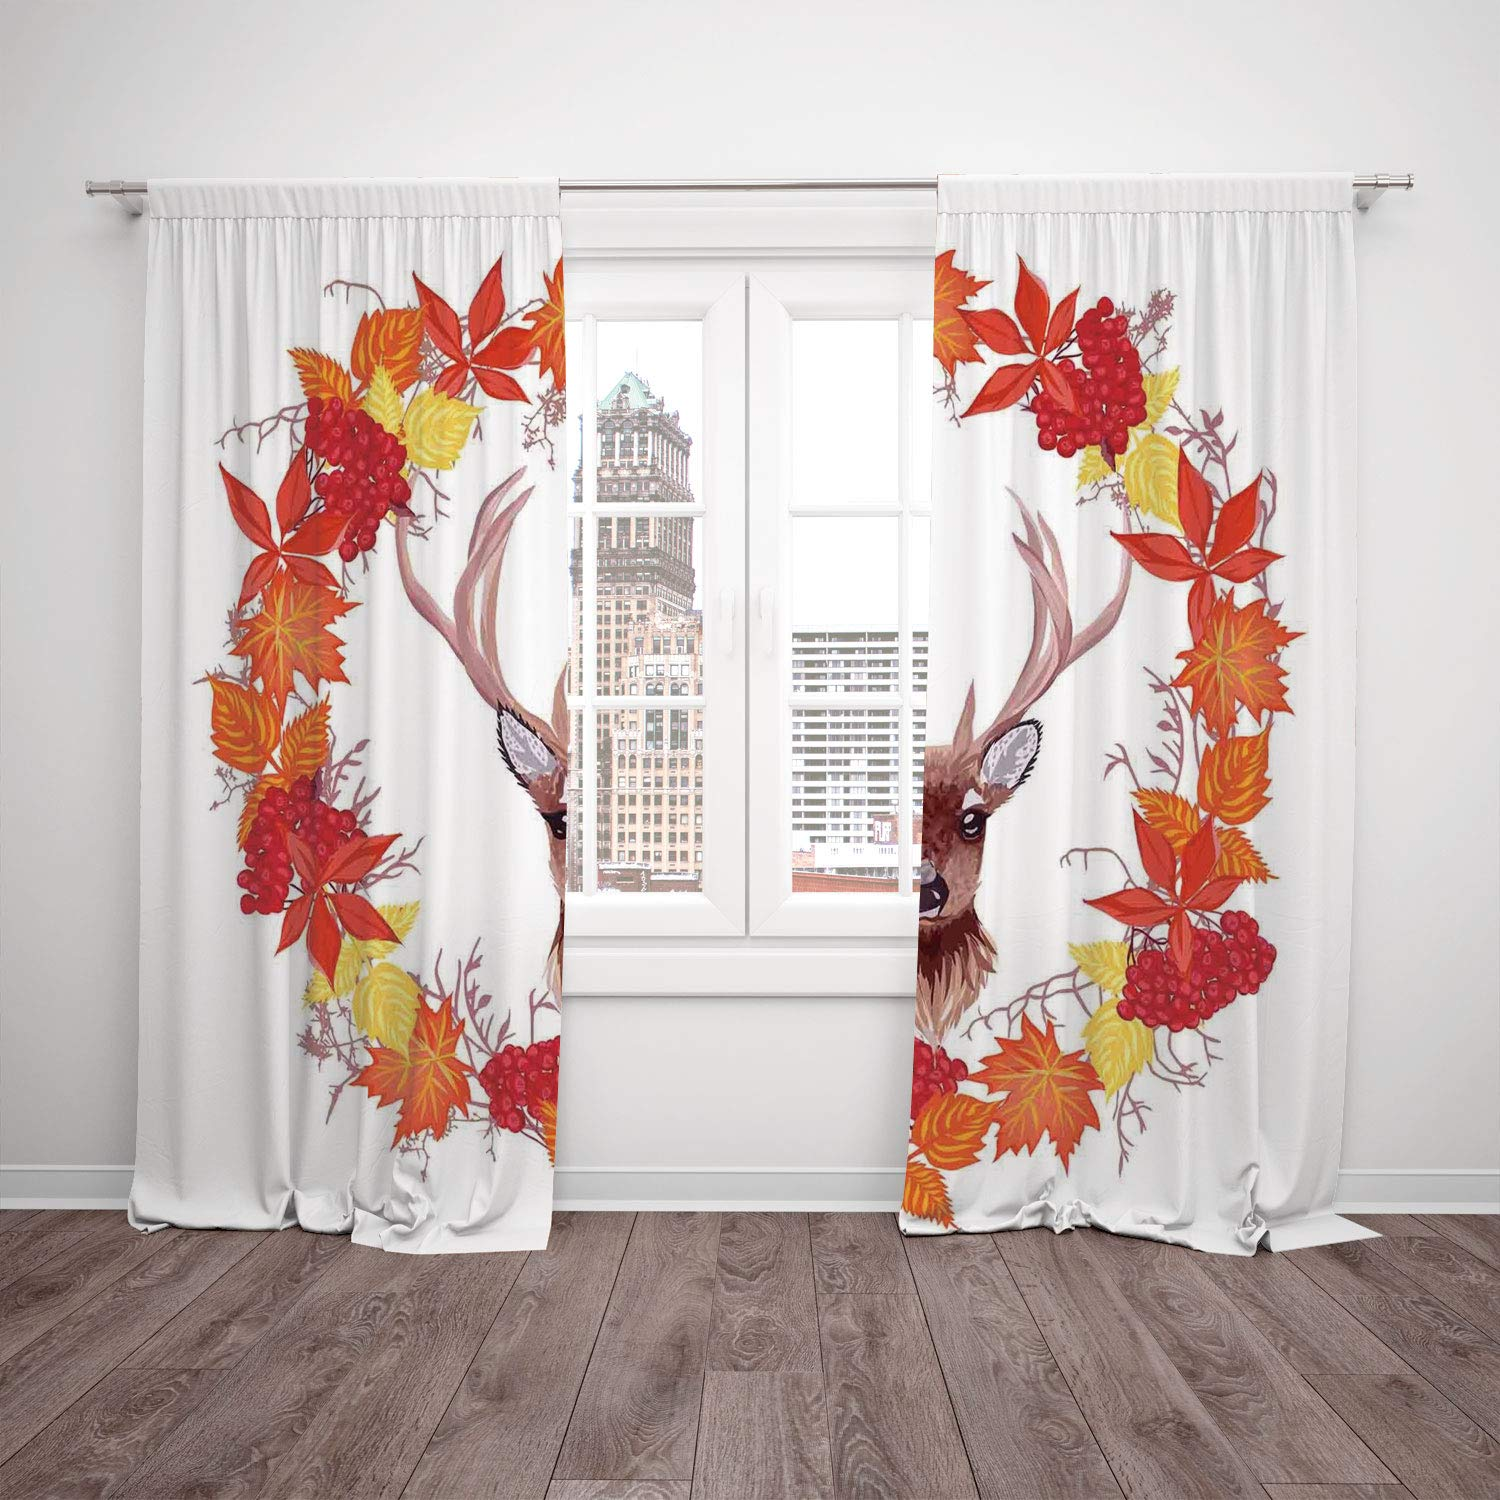 Thermal Insulated Blackout Window Curtain Fall Decorations Reindeer Head In Rounded Wreath Frame Made With Aesthetic Fall Leaves Brown Orange Living Room Bedroom Kitchen Cafe Window Drapes 2 Panel Set Amazon In Home Kitchen